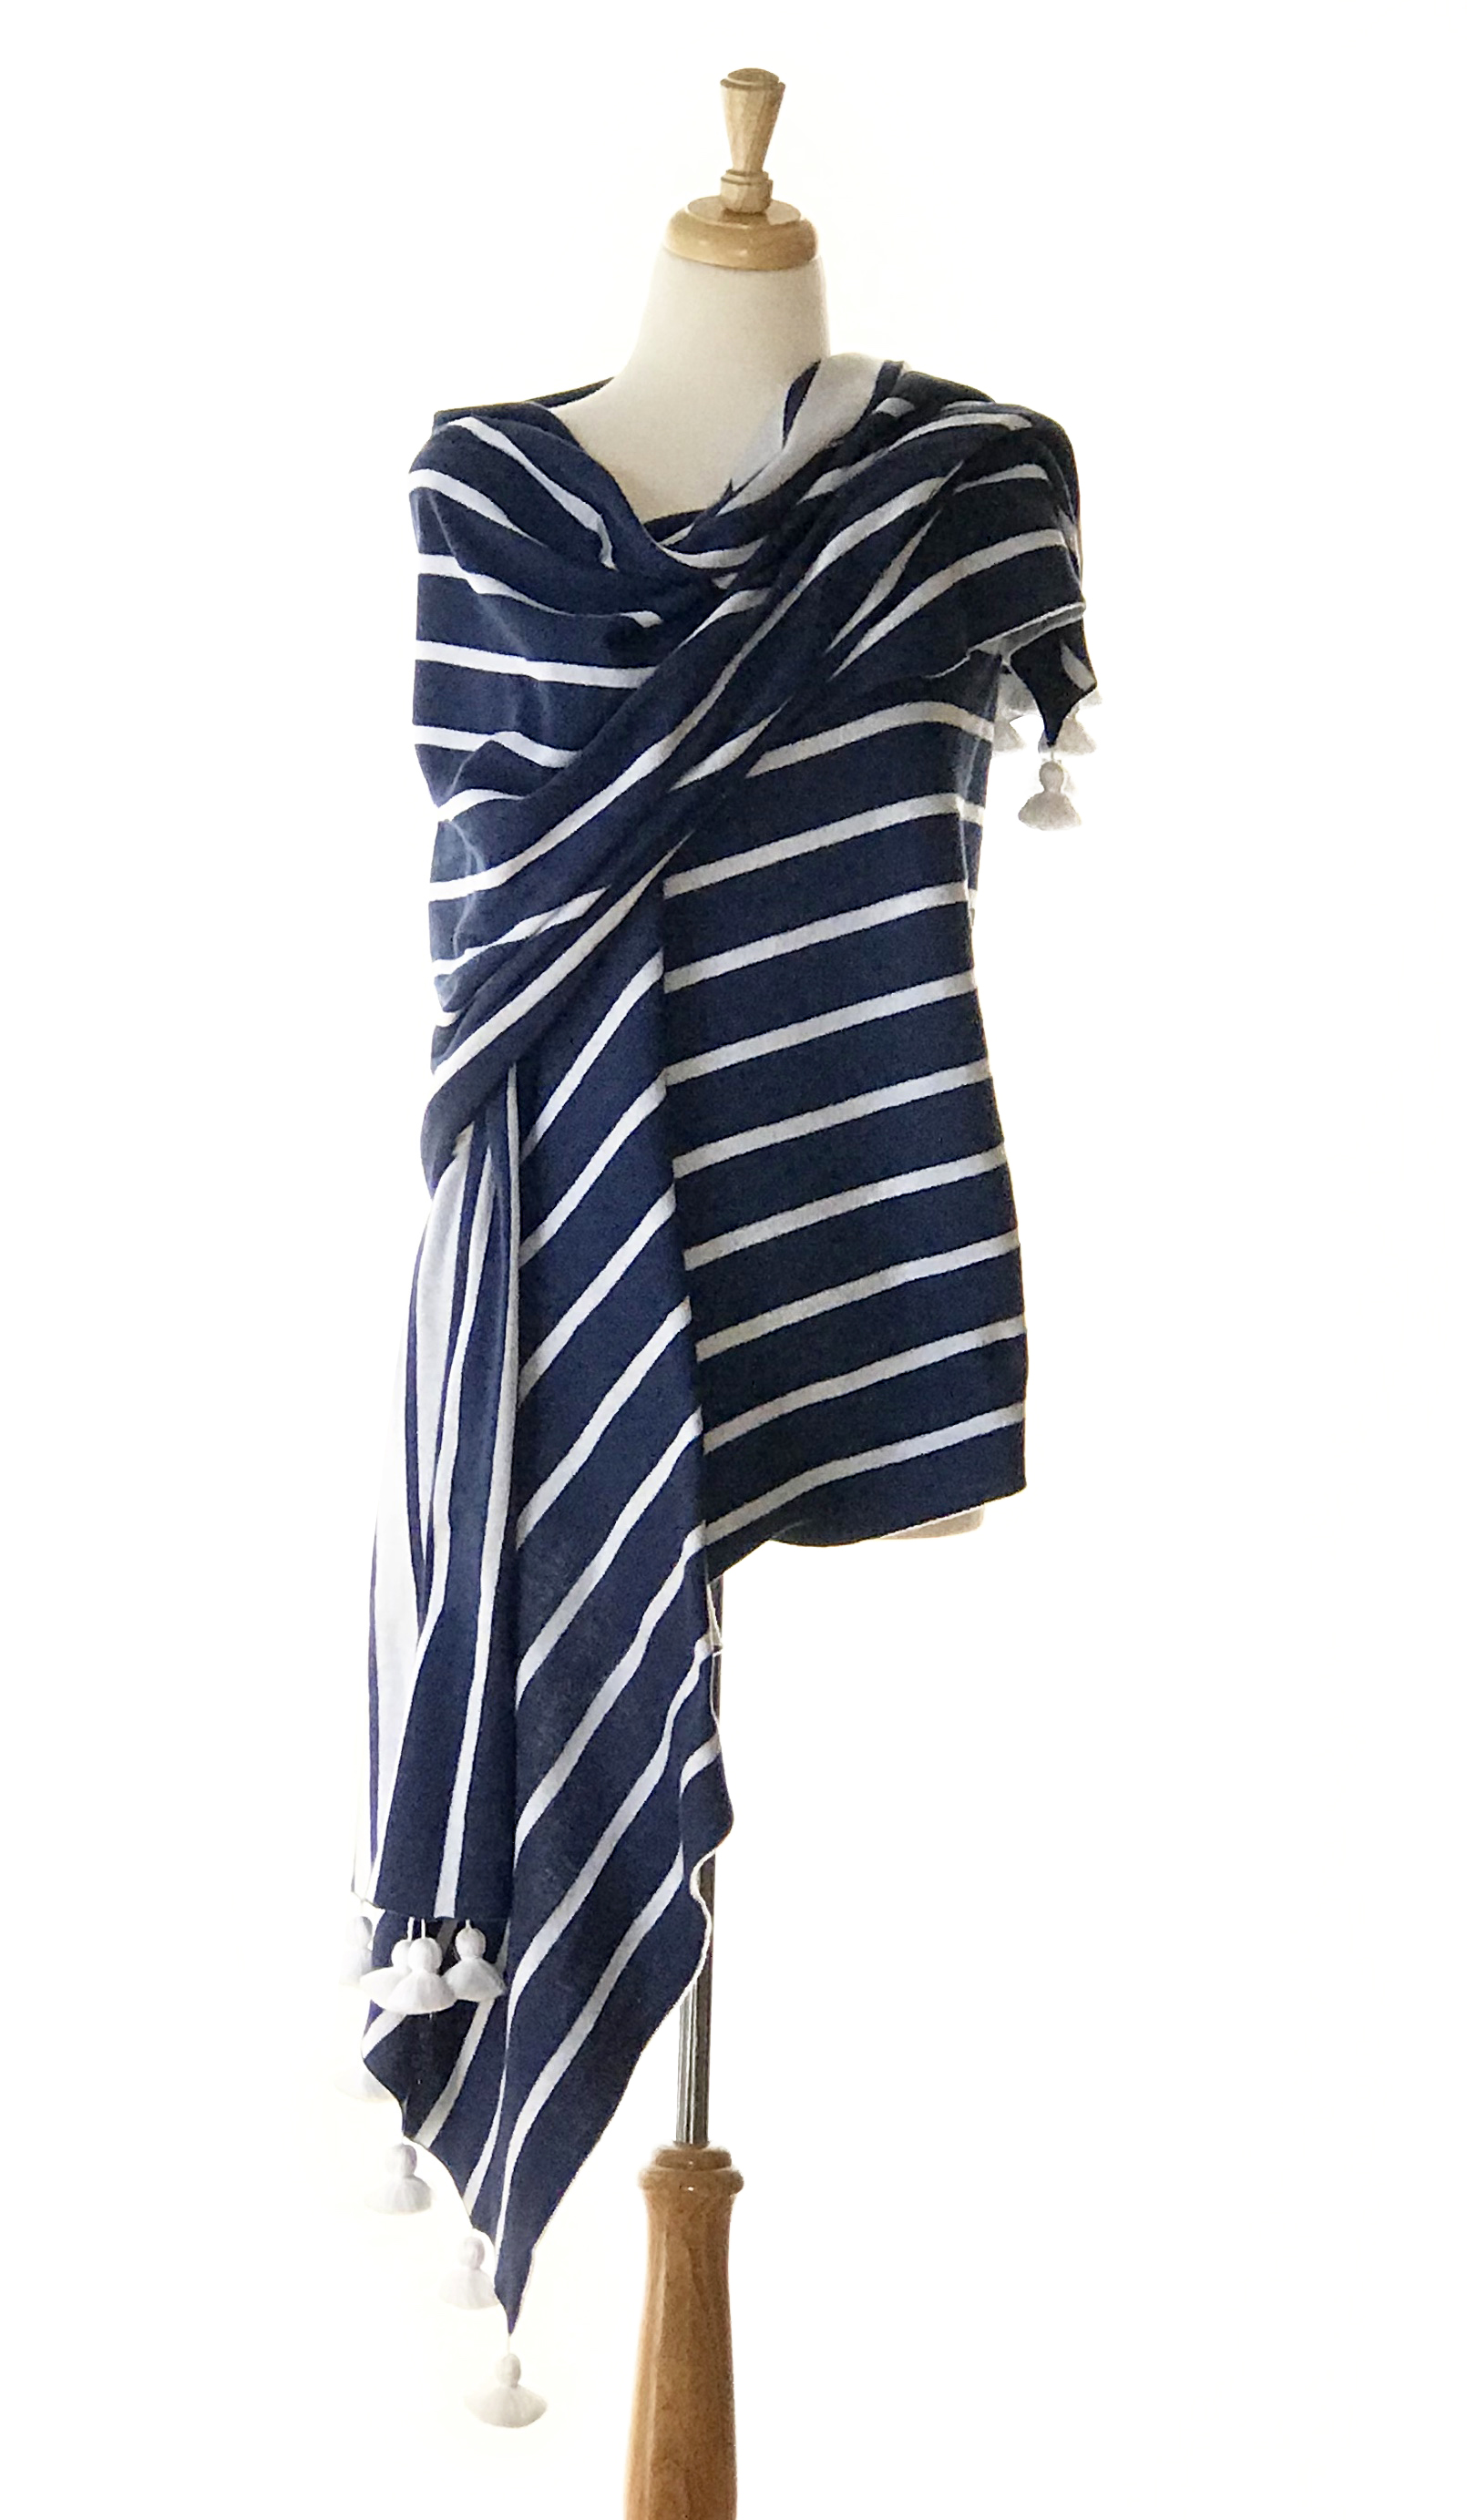 ANTIBES WRAP - Surround yourself in this long and lovely wrap with brilliant stripes and cheerful pom poms. 86 x 27 inches not including pom poms. 100% Peruvian Cotton.